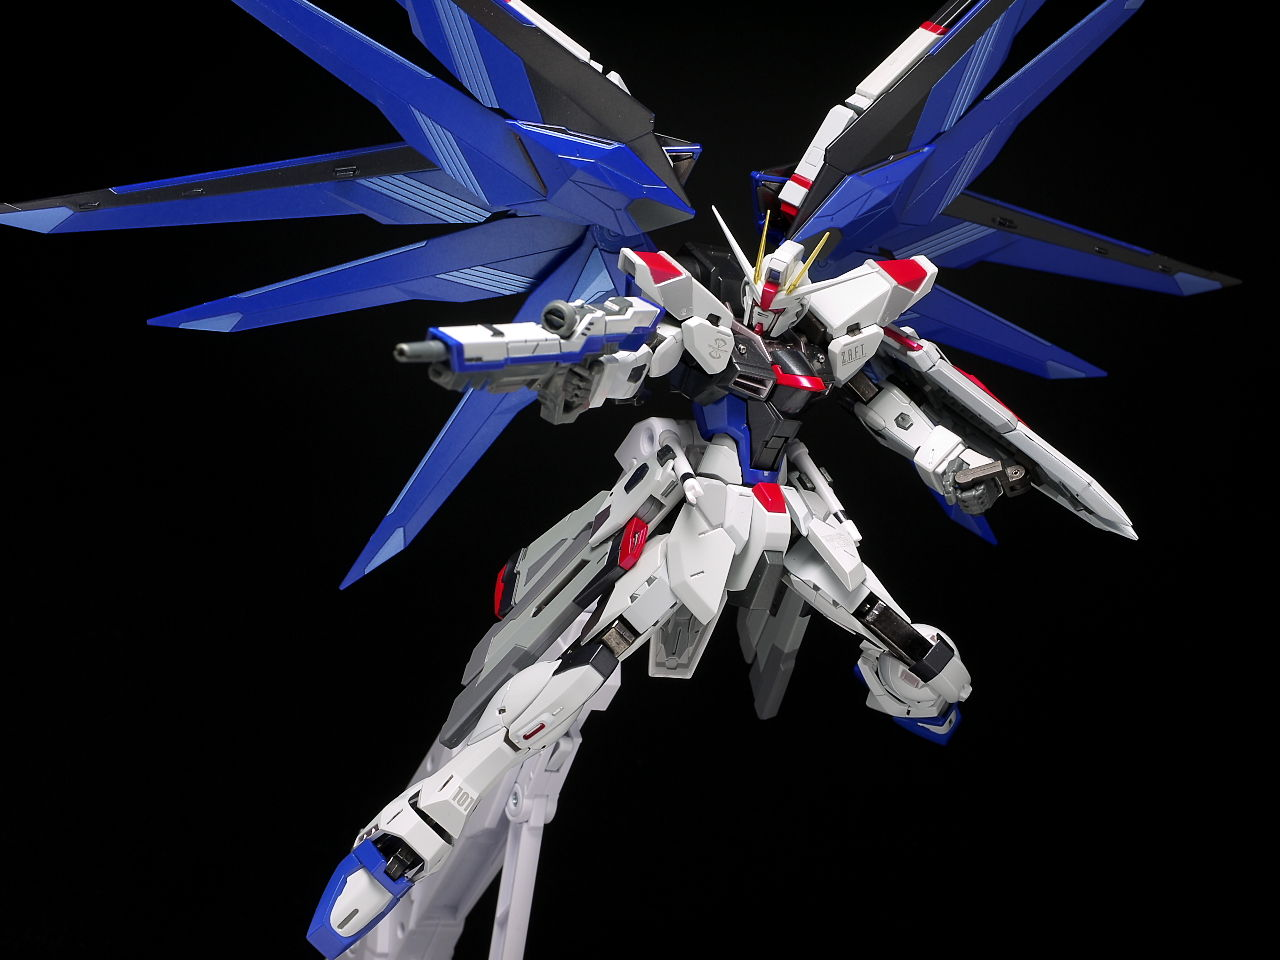 Gundam strike freedom wallpaper hd